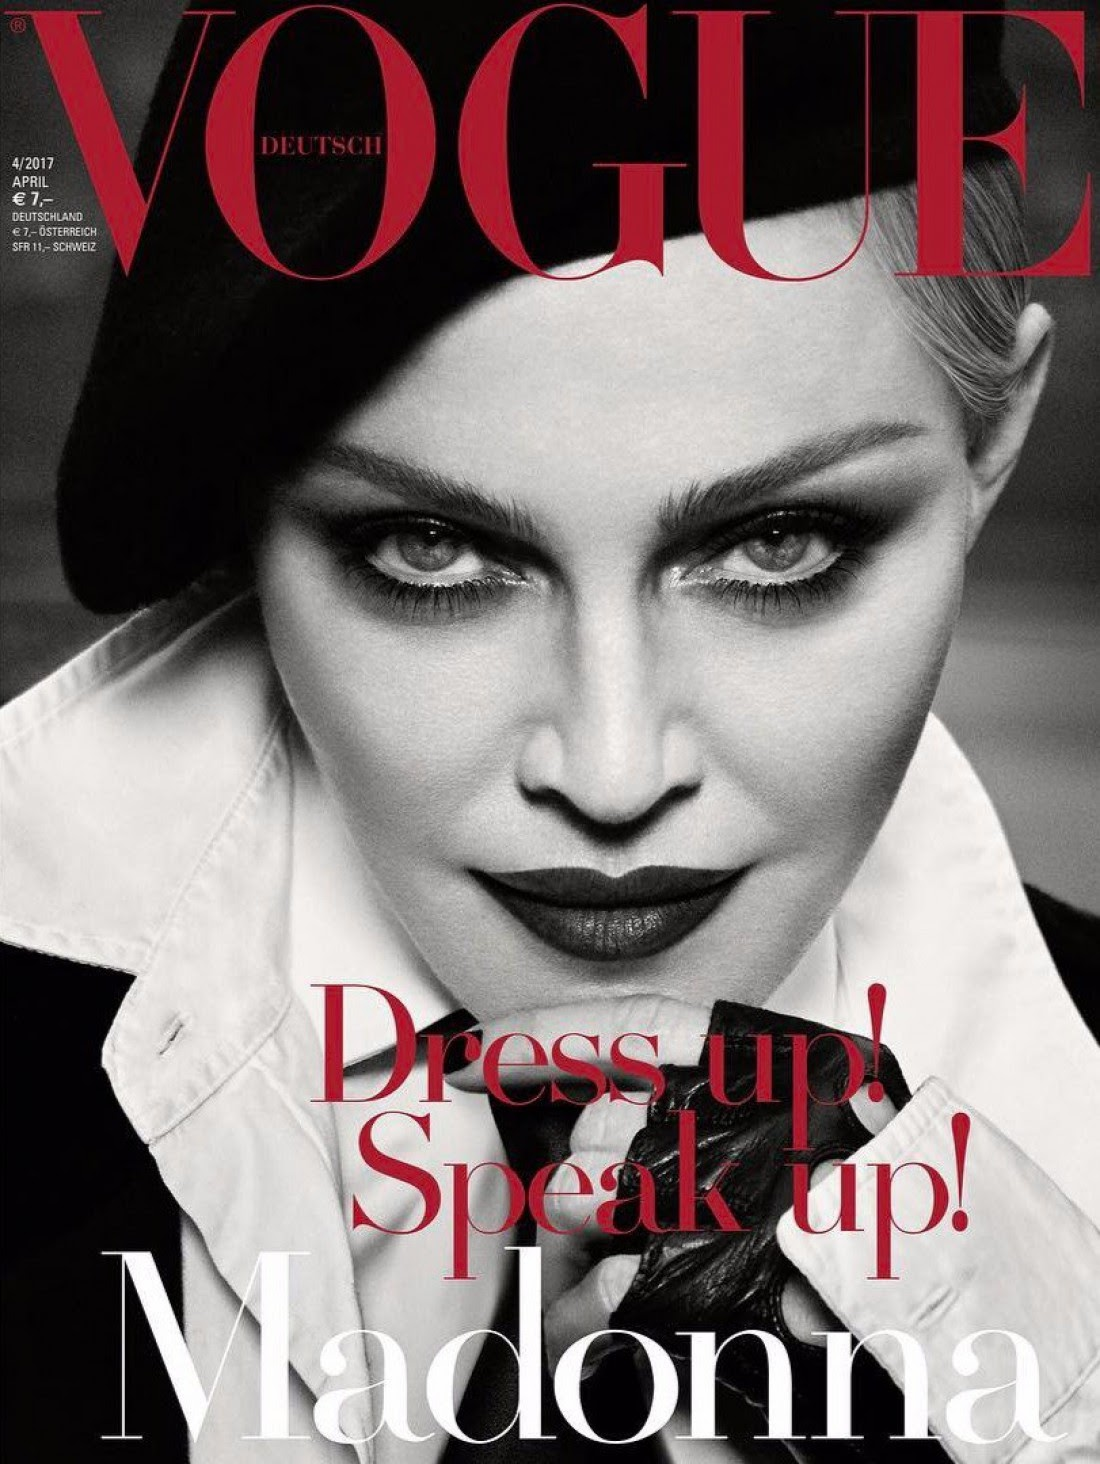 Madonna appeared of the German version of Vogue magazine